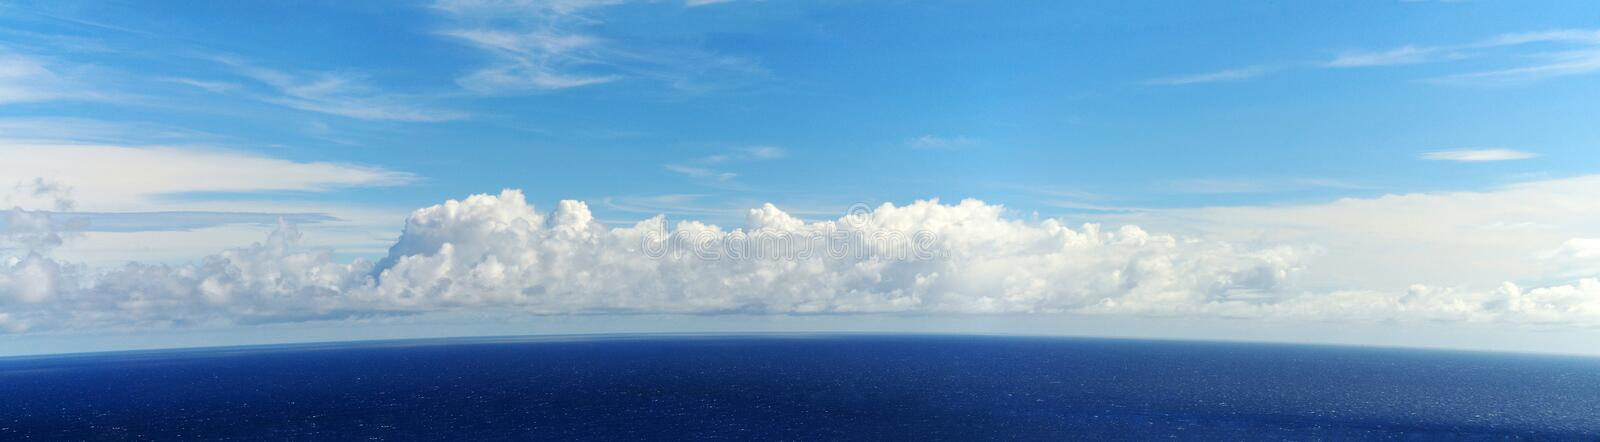 Horizon to heaven. The dark blue waters of the of the ocean around the island of Fogo, Cabo Verde, gives away to a clear horizon line with blue skies and puffy stock photography